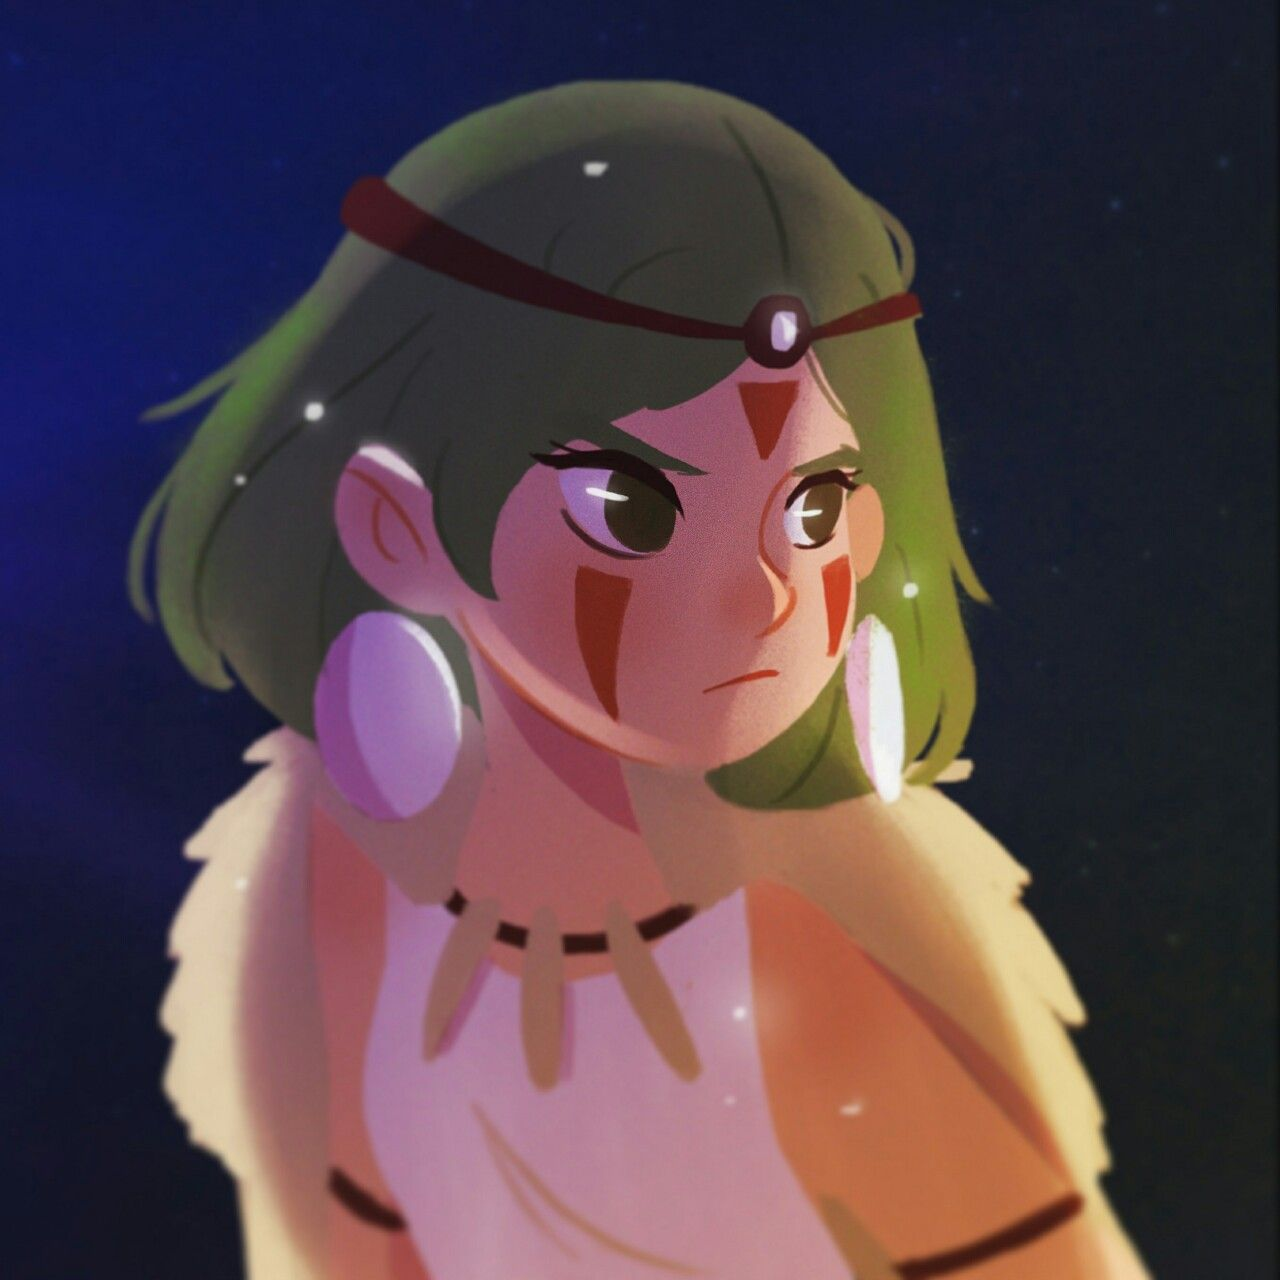 San from Mononoke Hime for morning warm up.